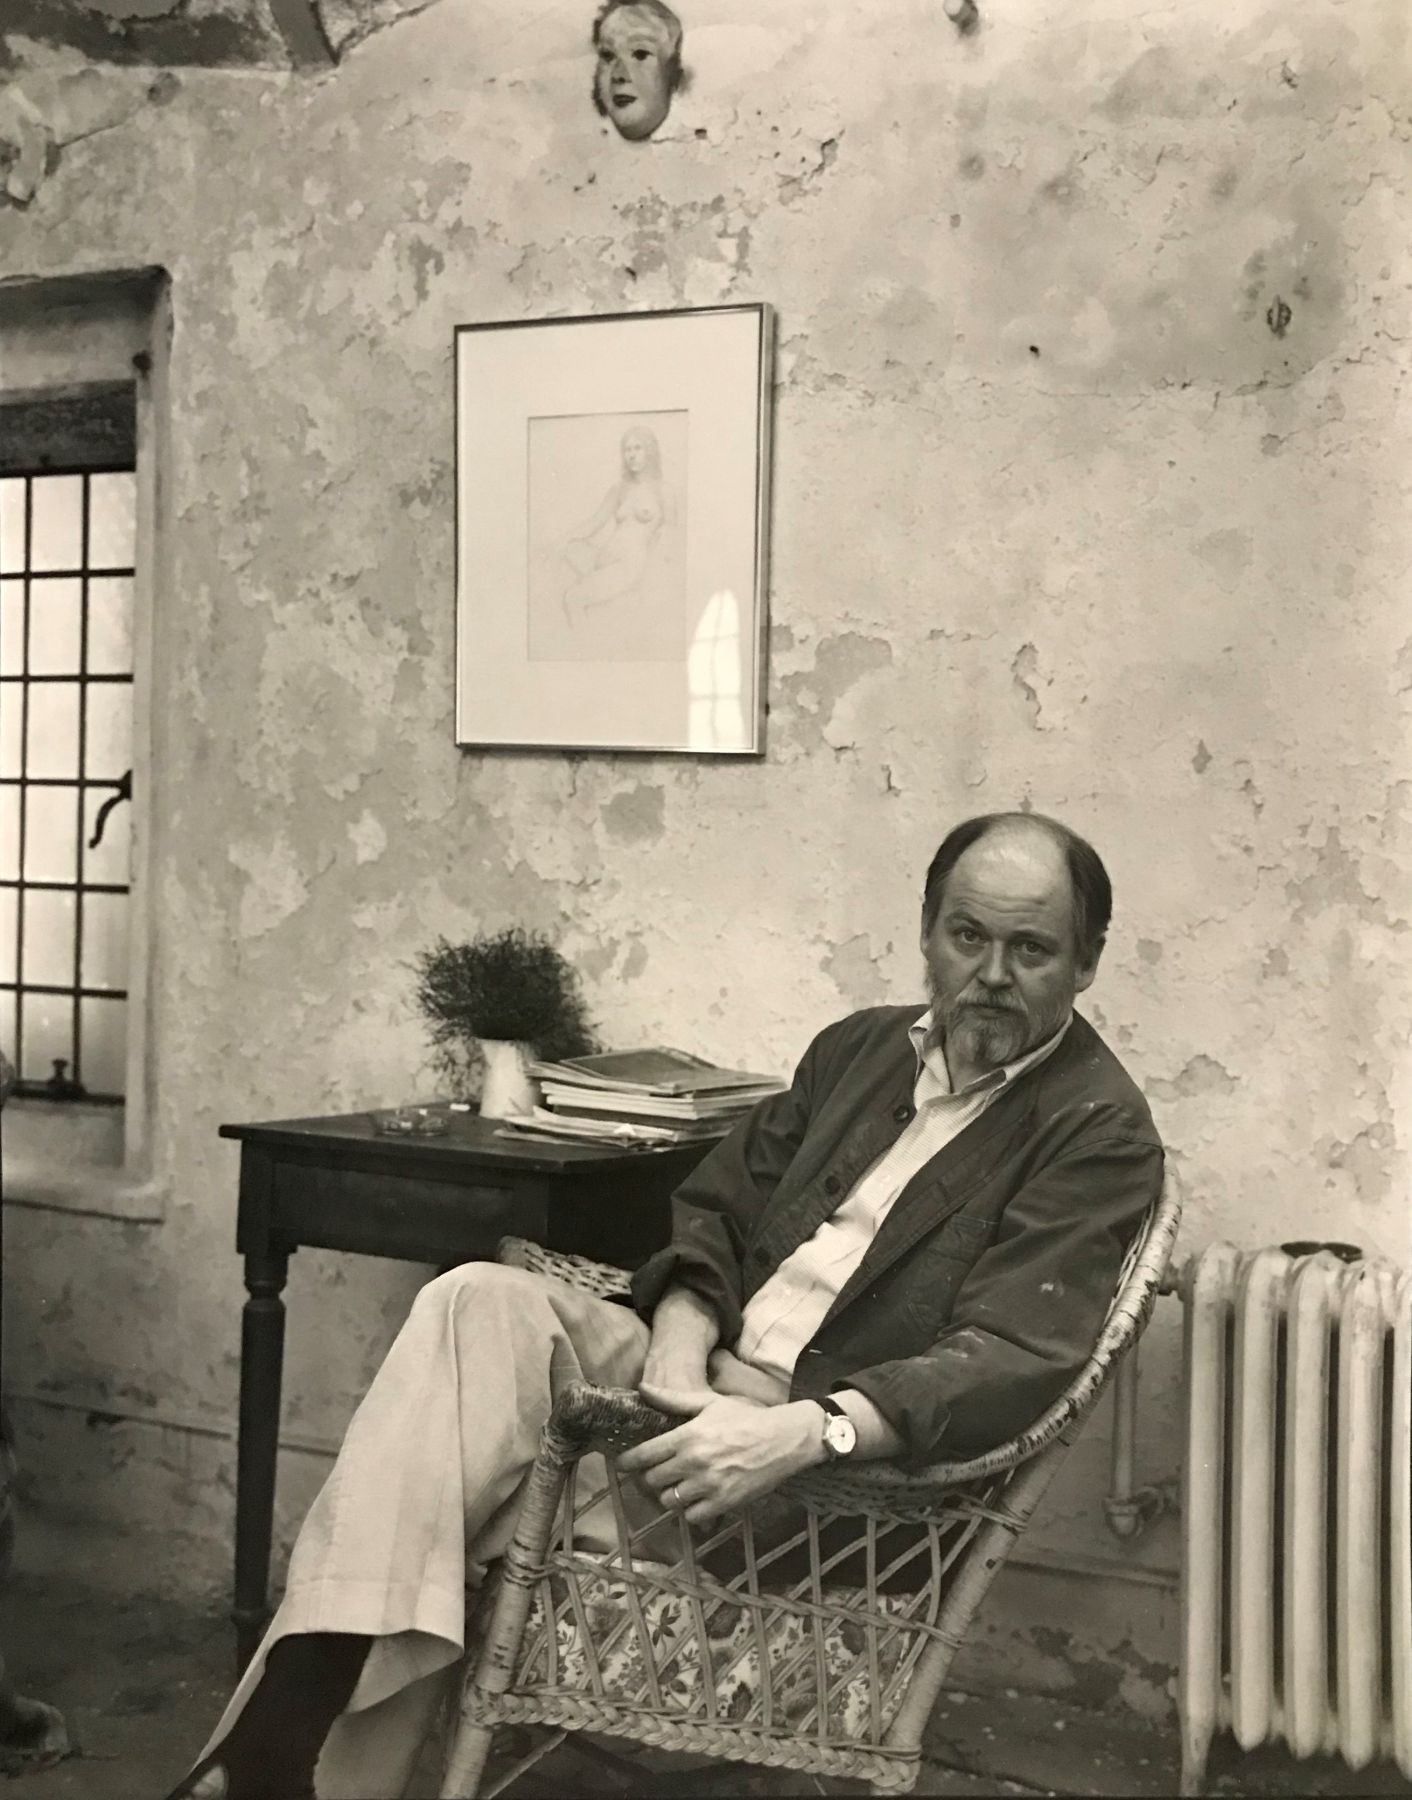 Image of Yale Weir Hall, Bill in Studio